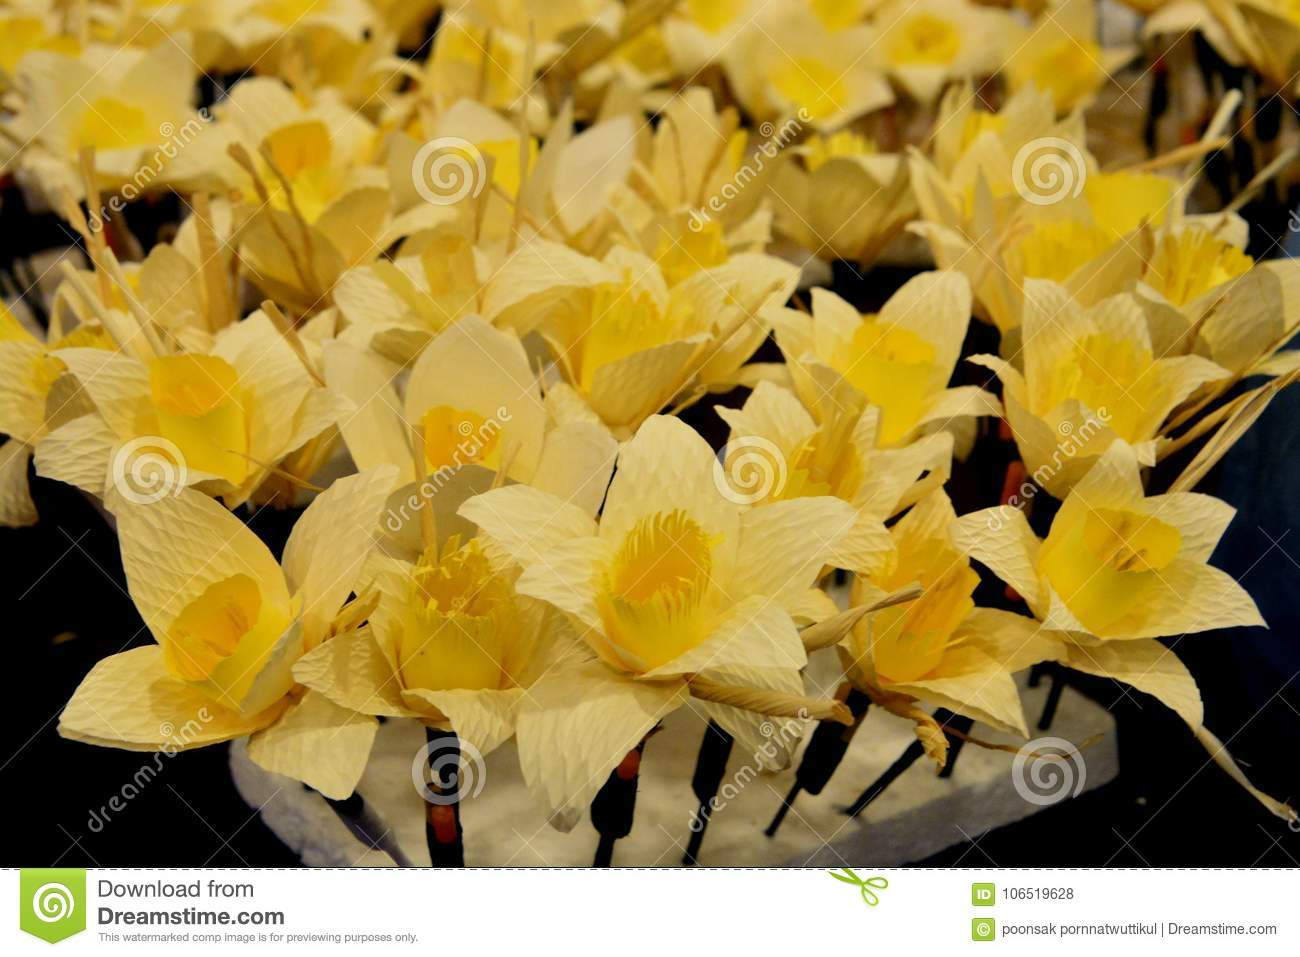 Thai artificial funeral flower dok mai chan stock photo image of download thai artificial funeral flower dok mai chan stock photo image of dead handmade izmirmasajfo